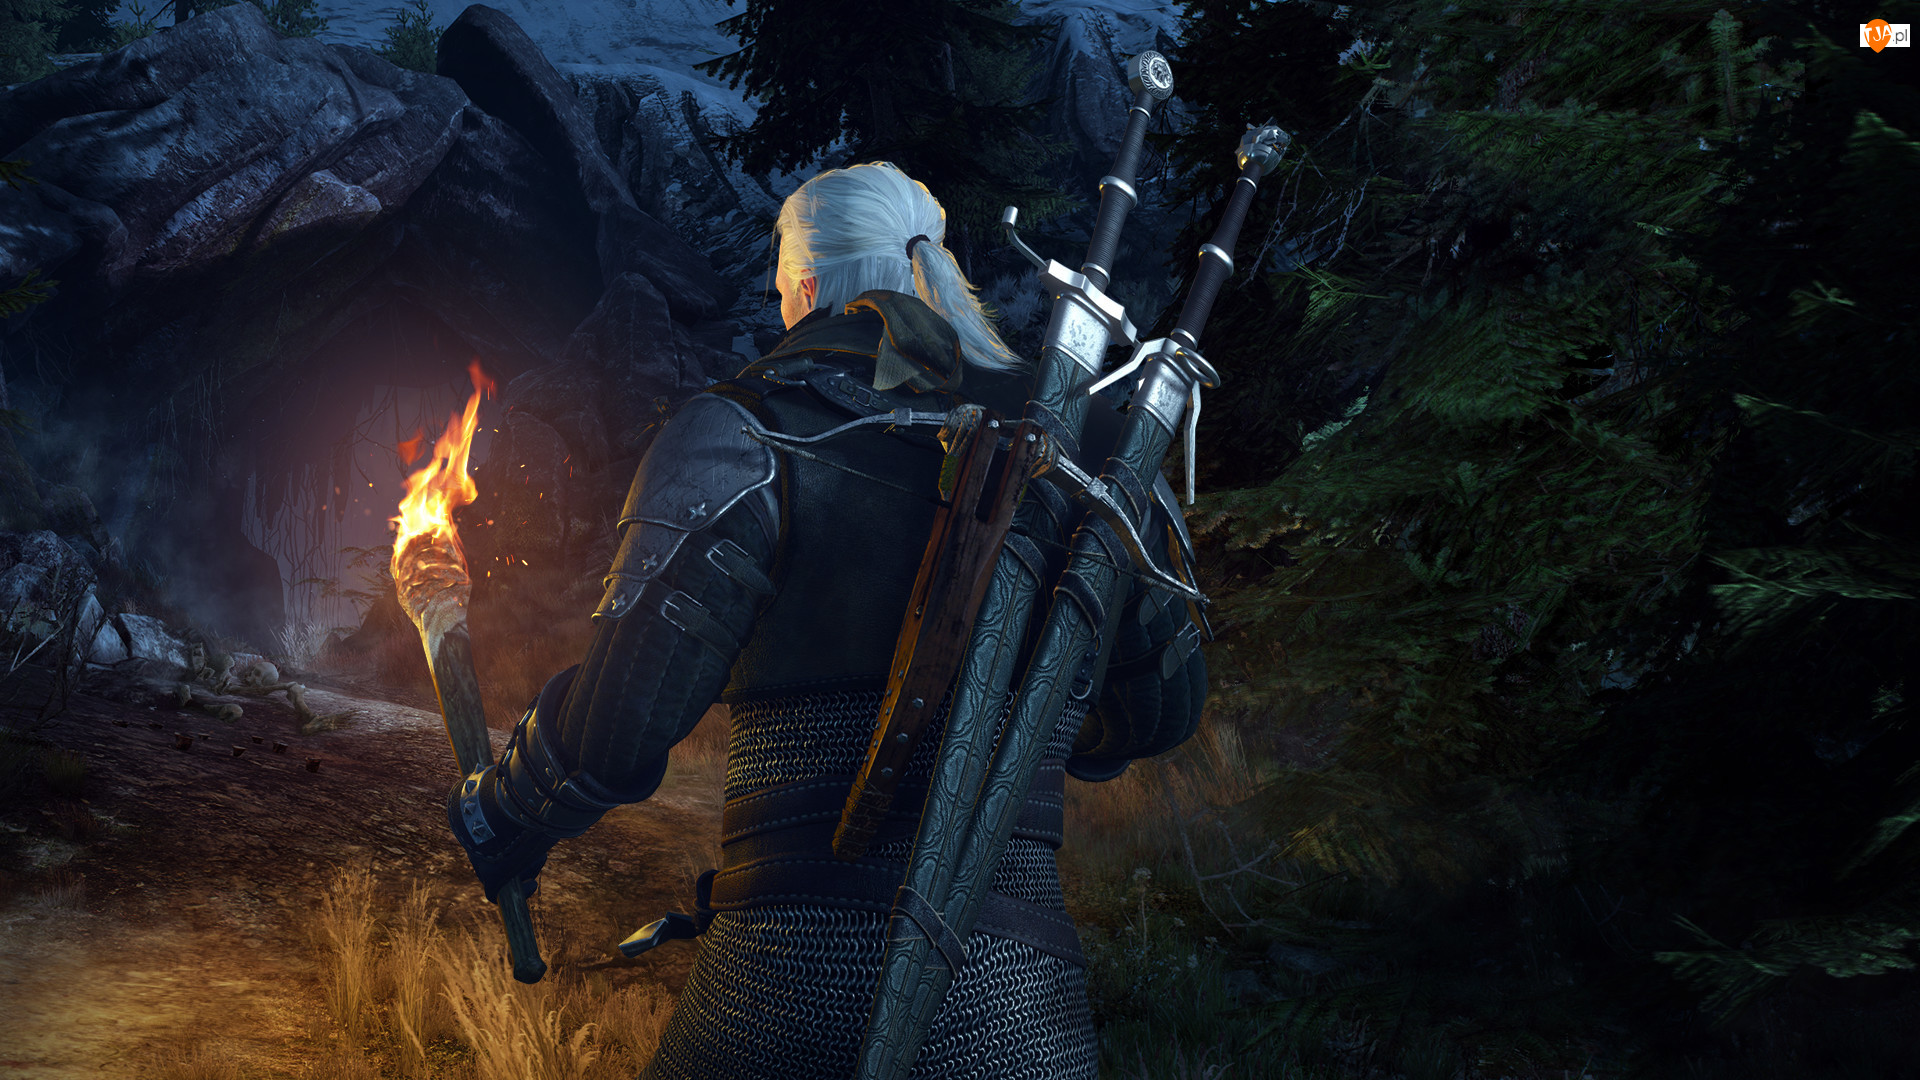 The Witcher 3 Wild Hunt, Wiedźmin 3 Dziki Gon